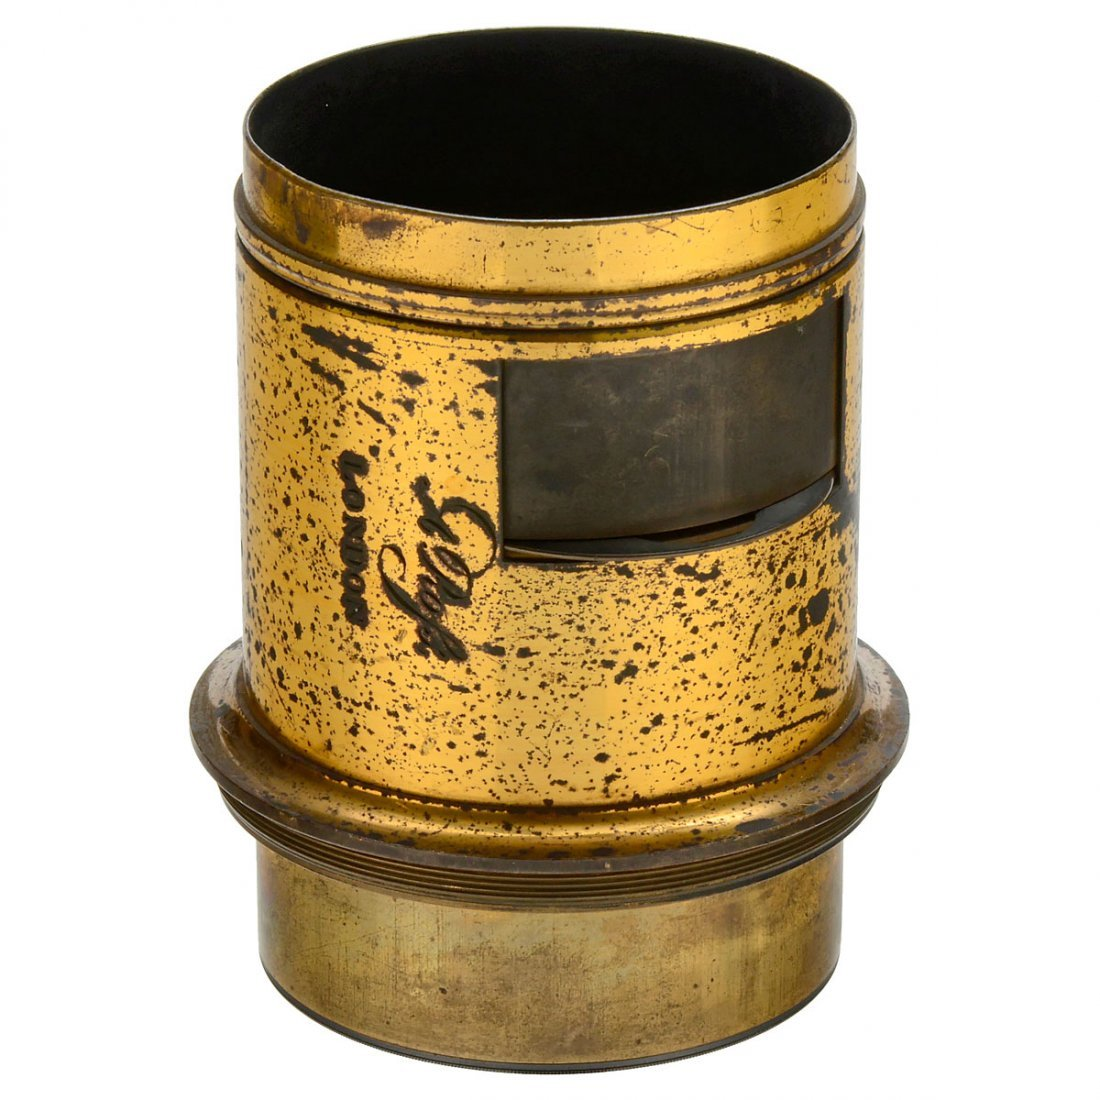 Brass Tube of an A. Ross Landscape Lens (Without